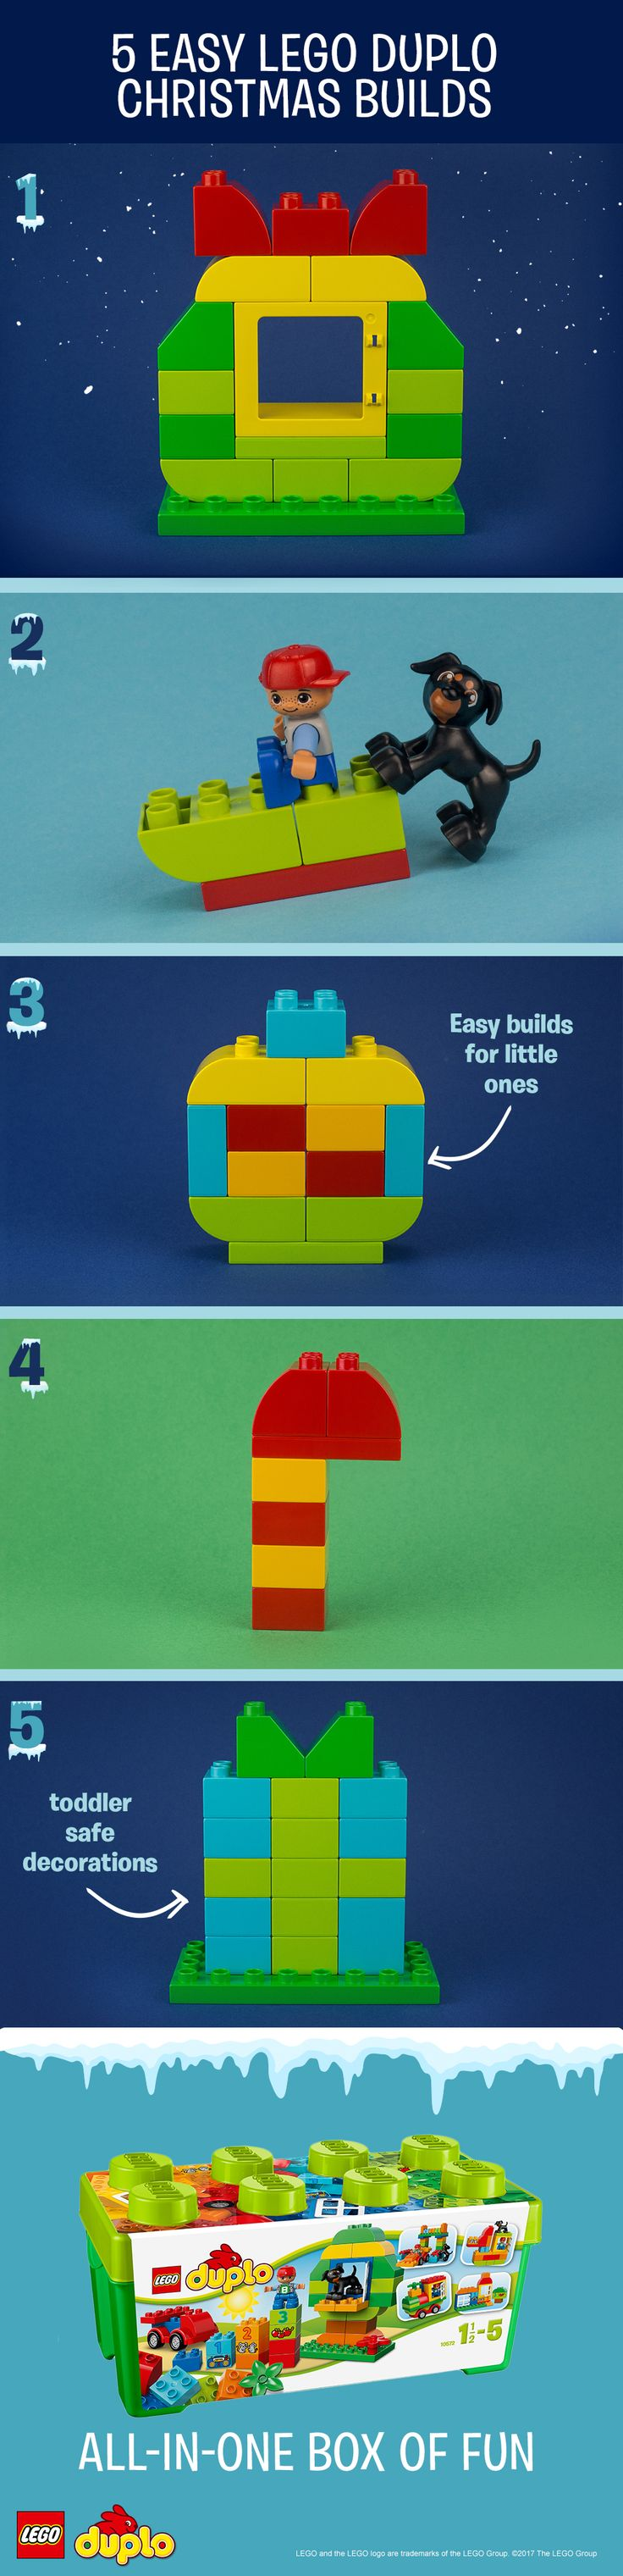 These simple, festive builds are a perfect activity to get little ones excited for the holidays – and they can all be made using one box of LEGO DUPLO bricks! These are a great beginner construction activity for you and your child to do together. Build toddler-safe decorations for your home, like a beautiful bauble or a traditional wreath - or have fun roleplaying together with a wintery sledging scene. Make all of these holiday builds with the LEGO DUPLO All-in-One-Box-of-Fun. Click to buy.